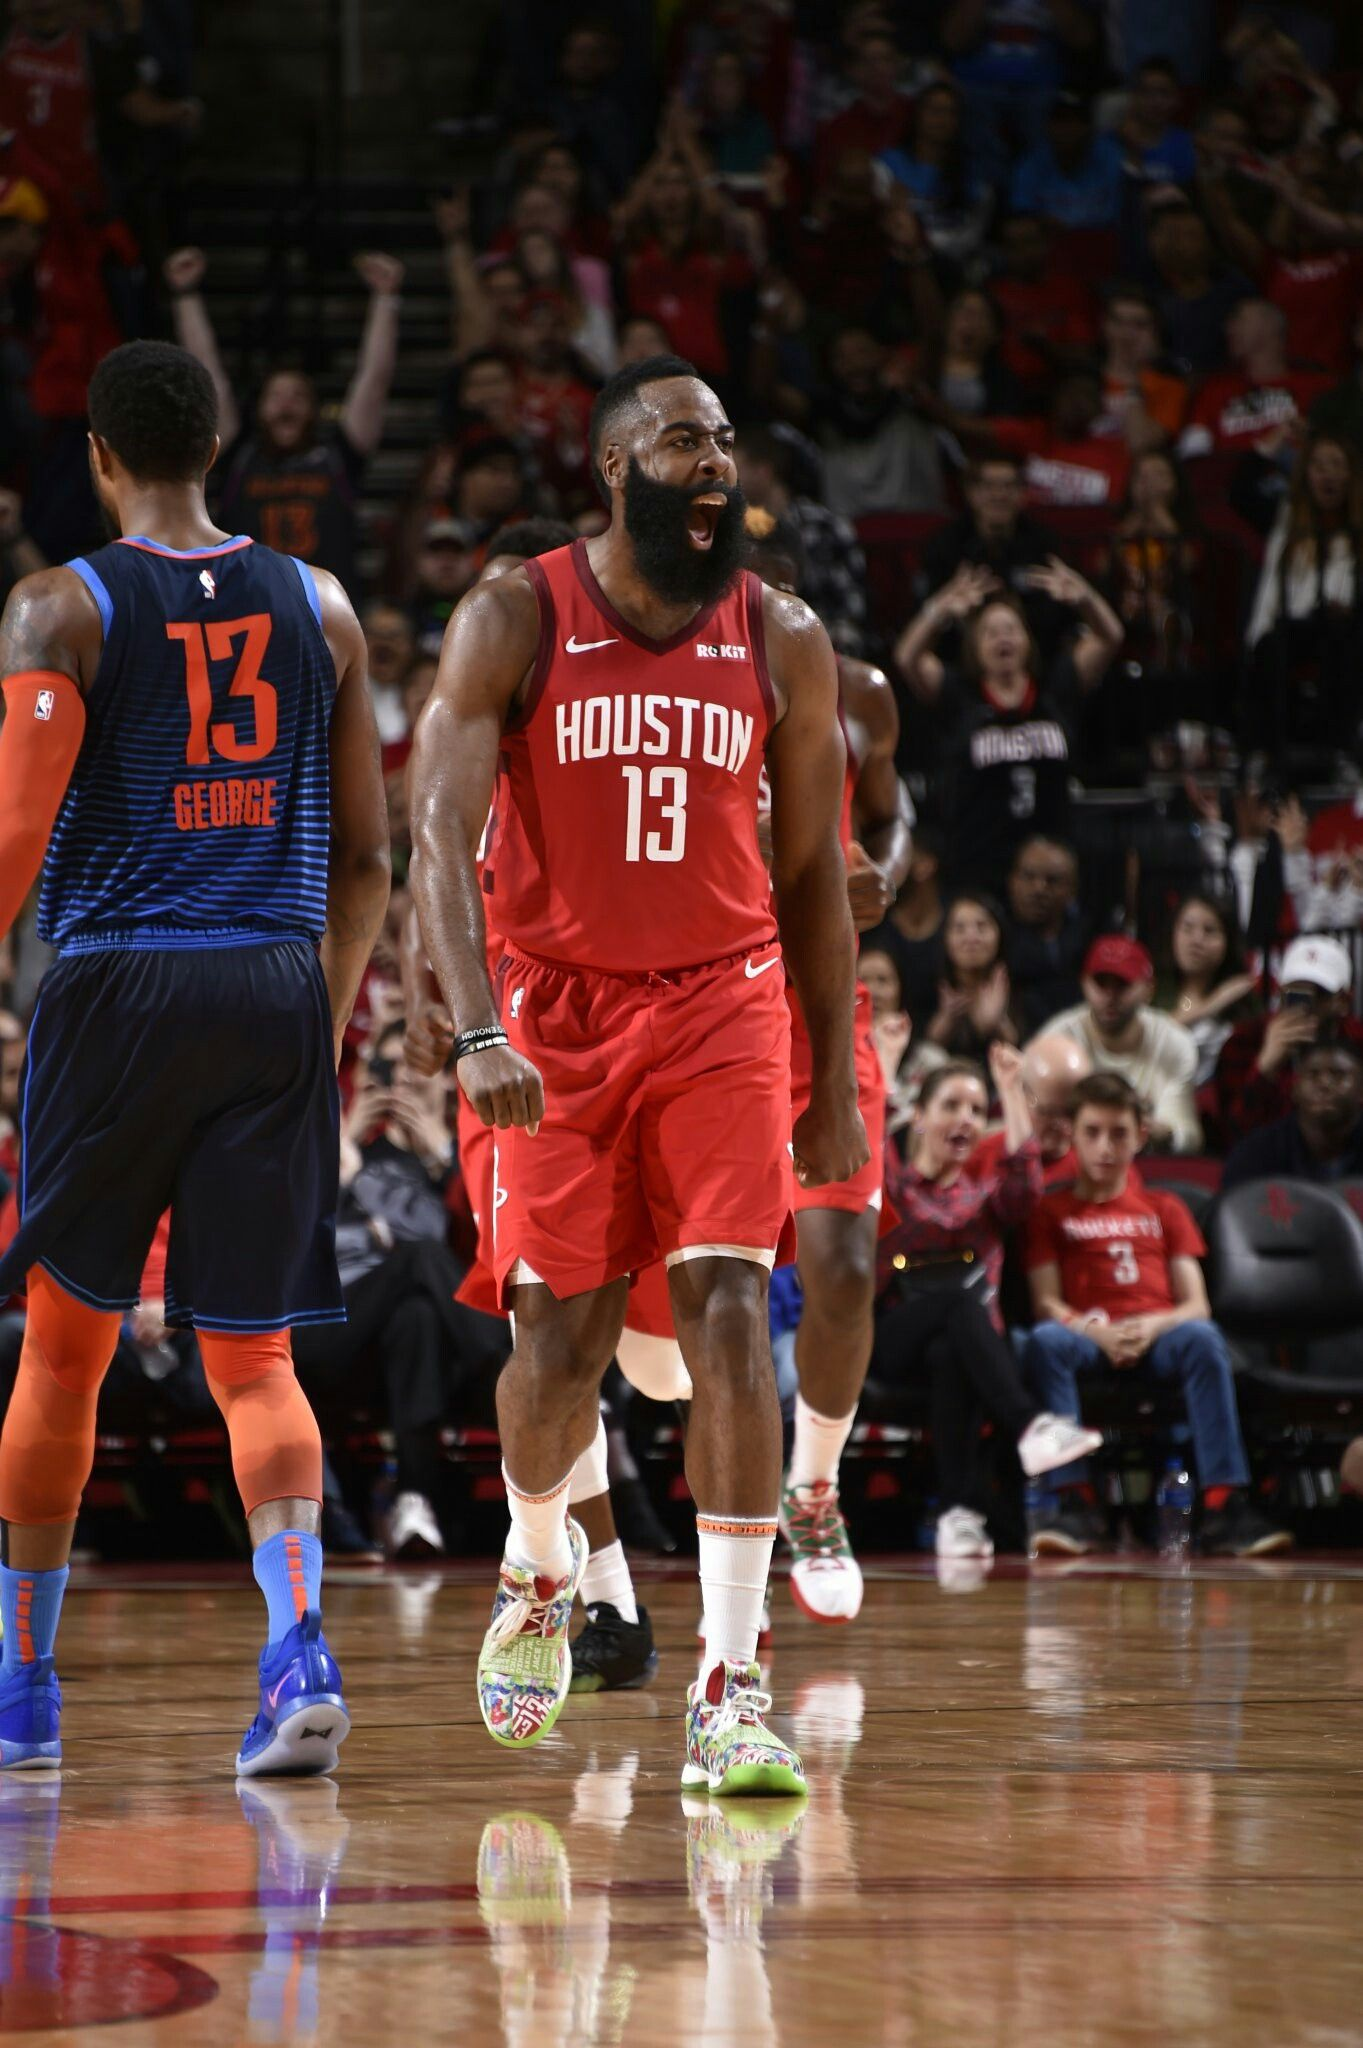 NBA HOU image by Shawn Gordon Houston rockets, Nba